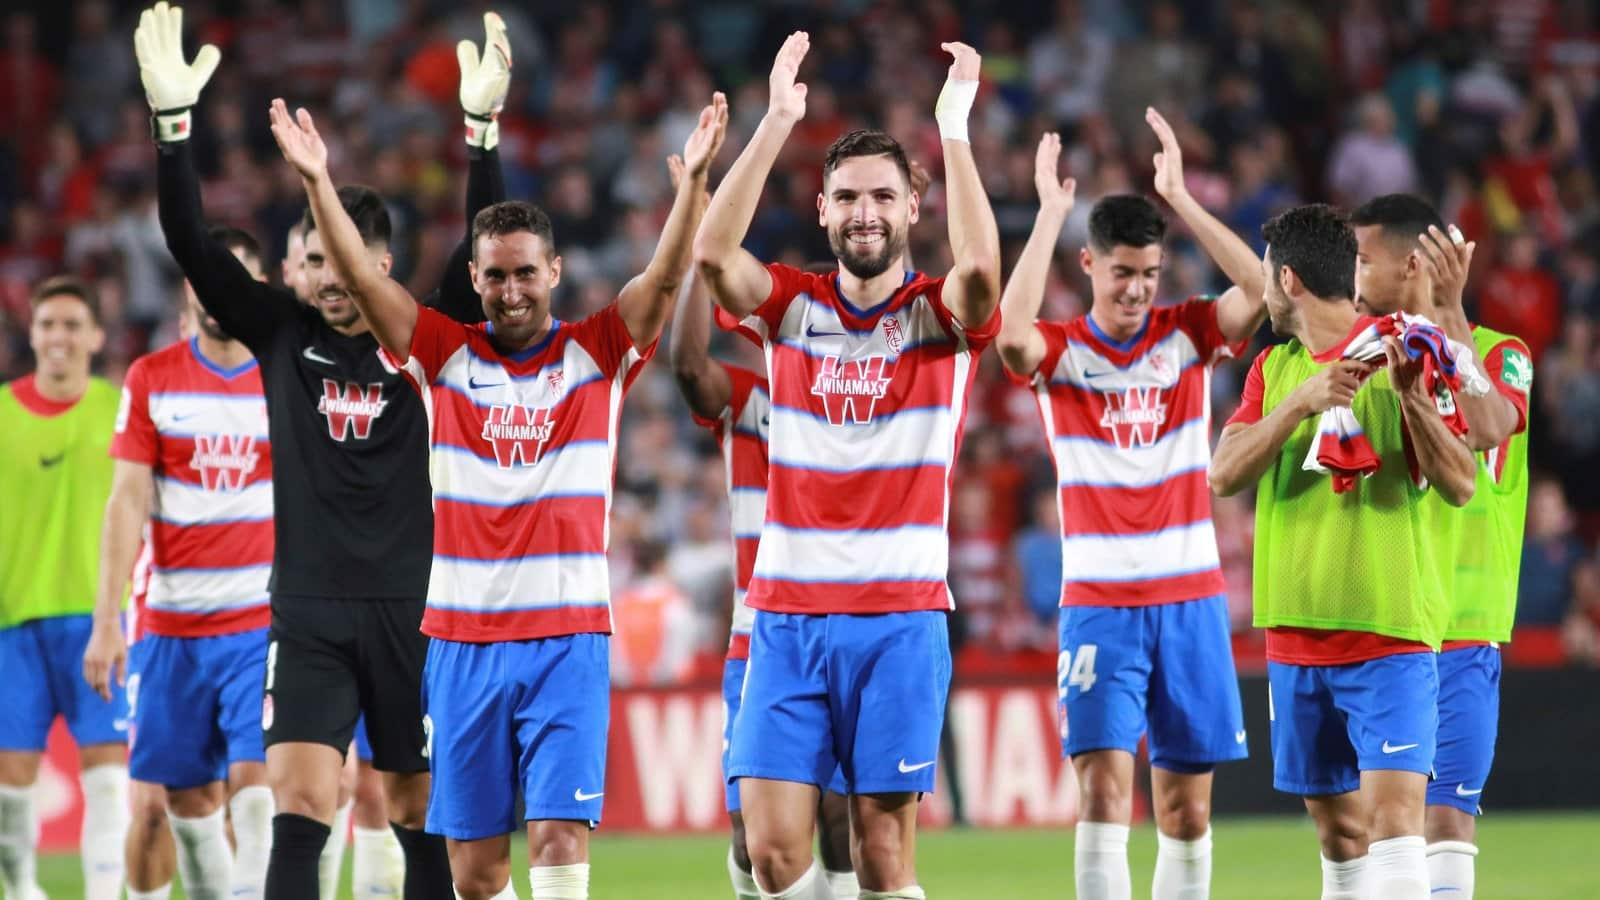 Athletic Bilbao Vs Granada Preview Tips And Odds Sportingpedia Latest Sports News From All Over The World